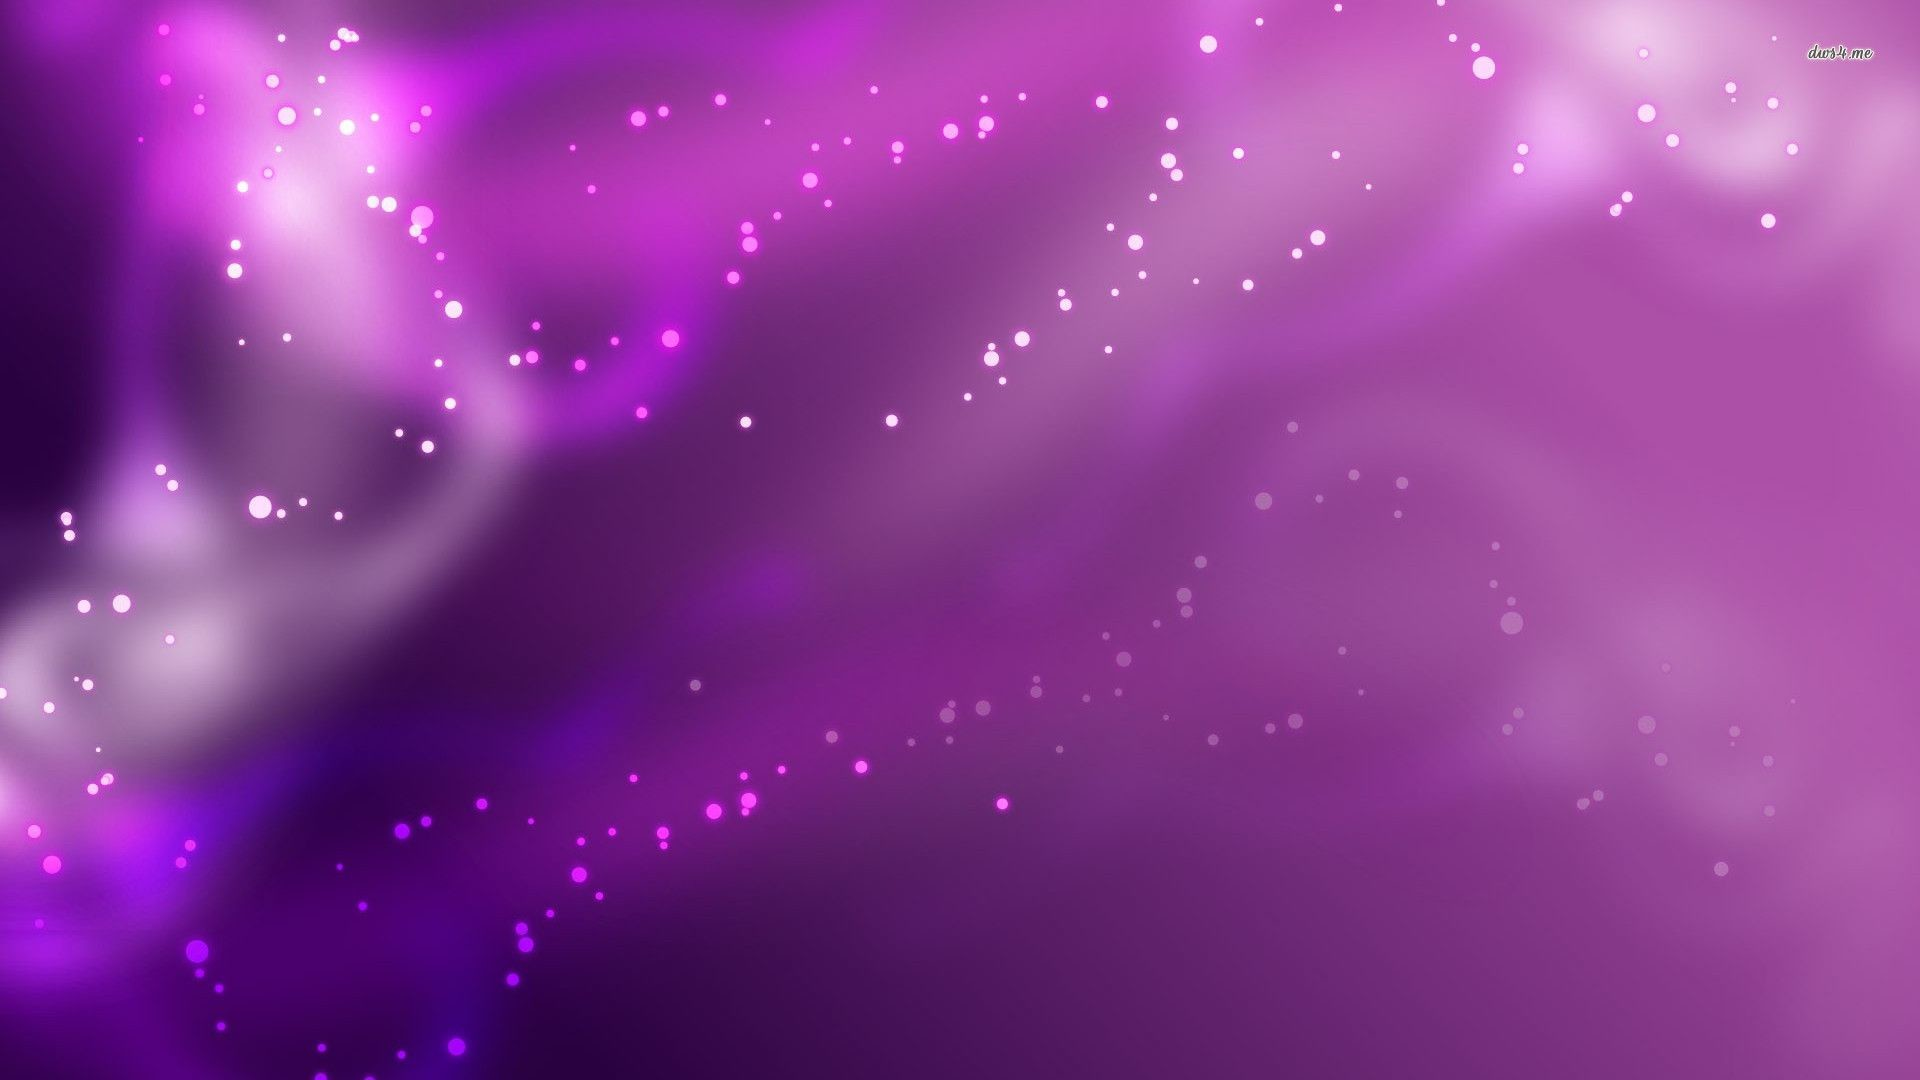 1920x1080 Light Purple Abstract Wallpaper Background 1 HD Wallpapers | aduphoto.